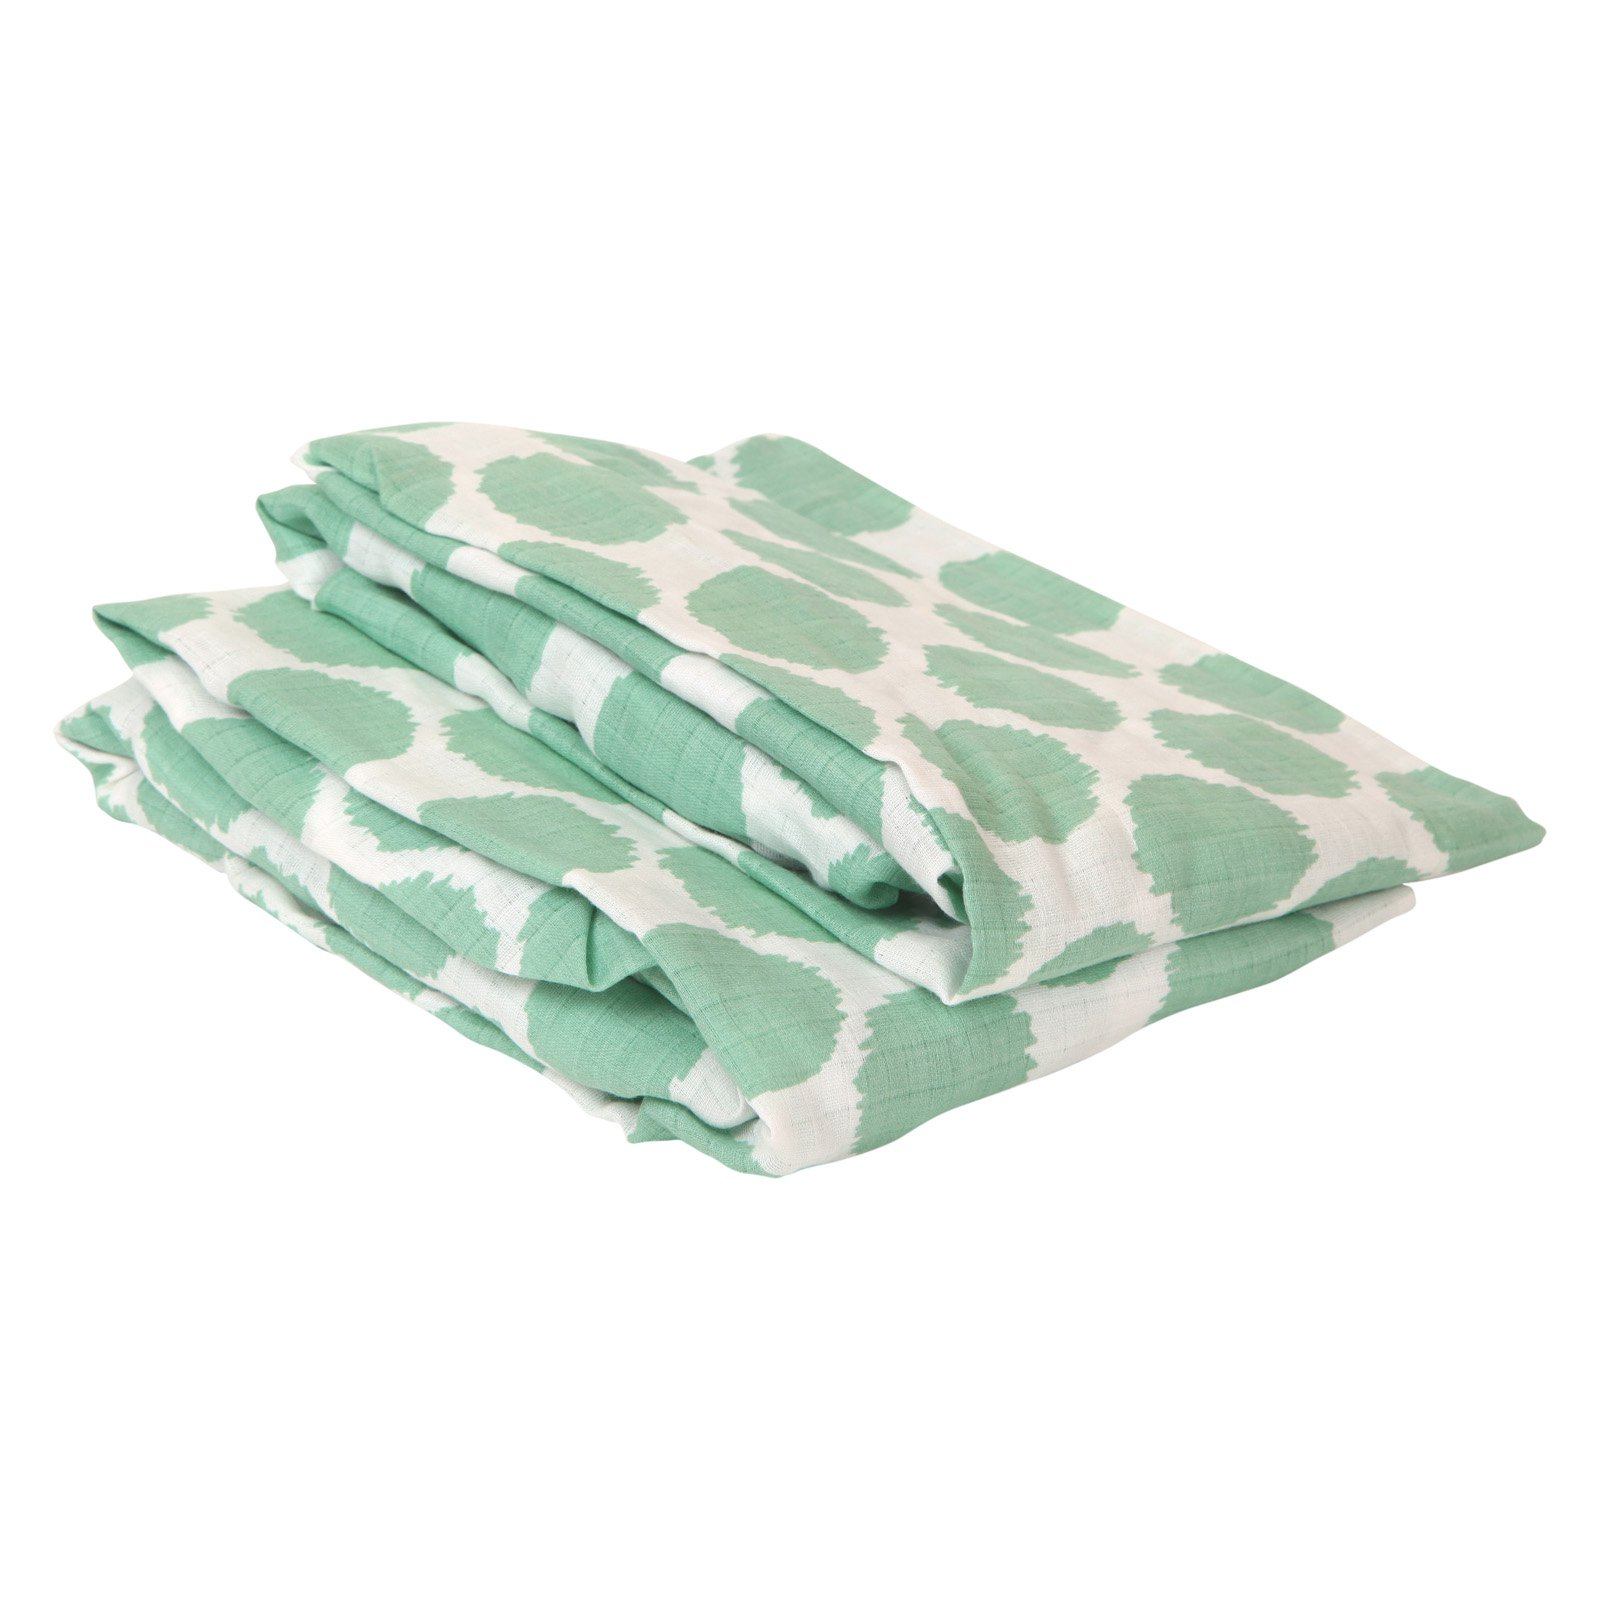 Bacati Ikat Dots Muslin Crib Sheet - Set of 2